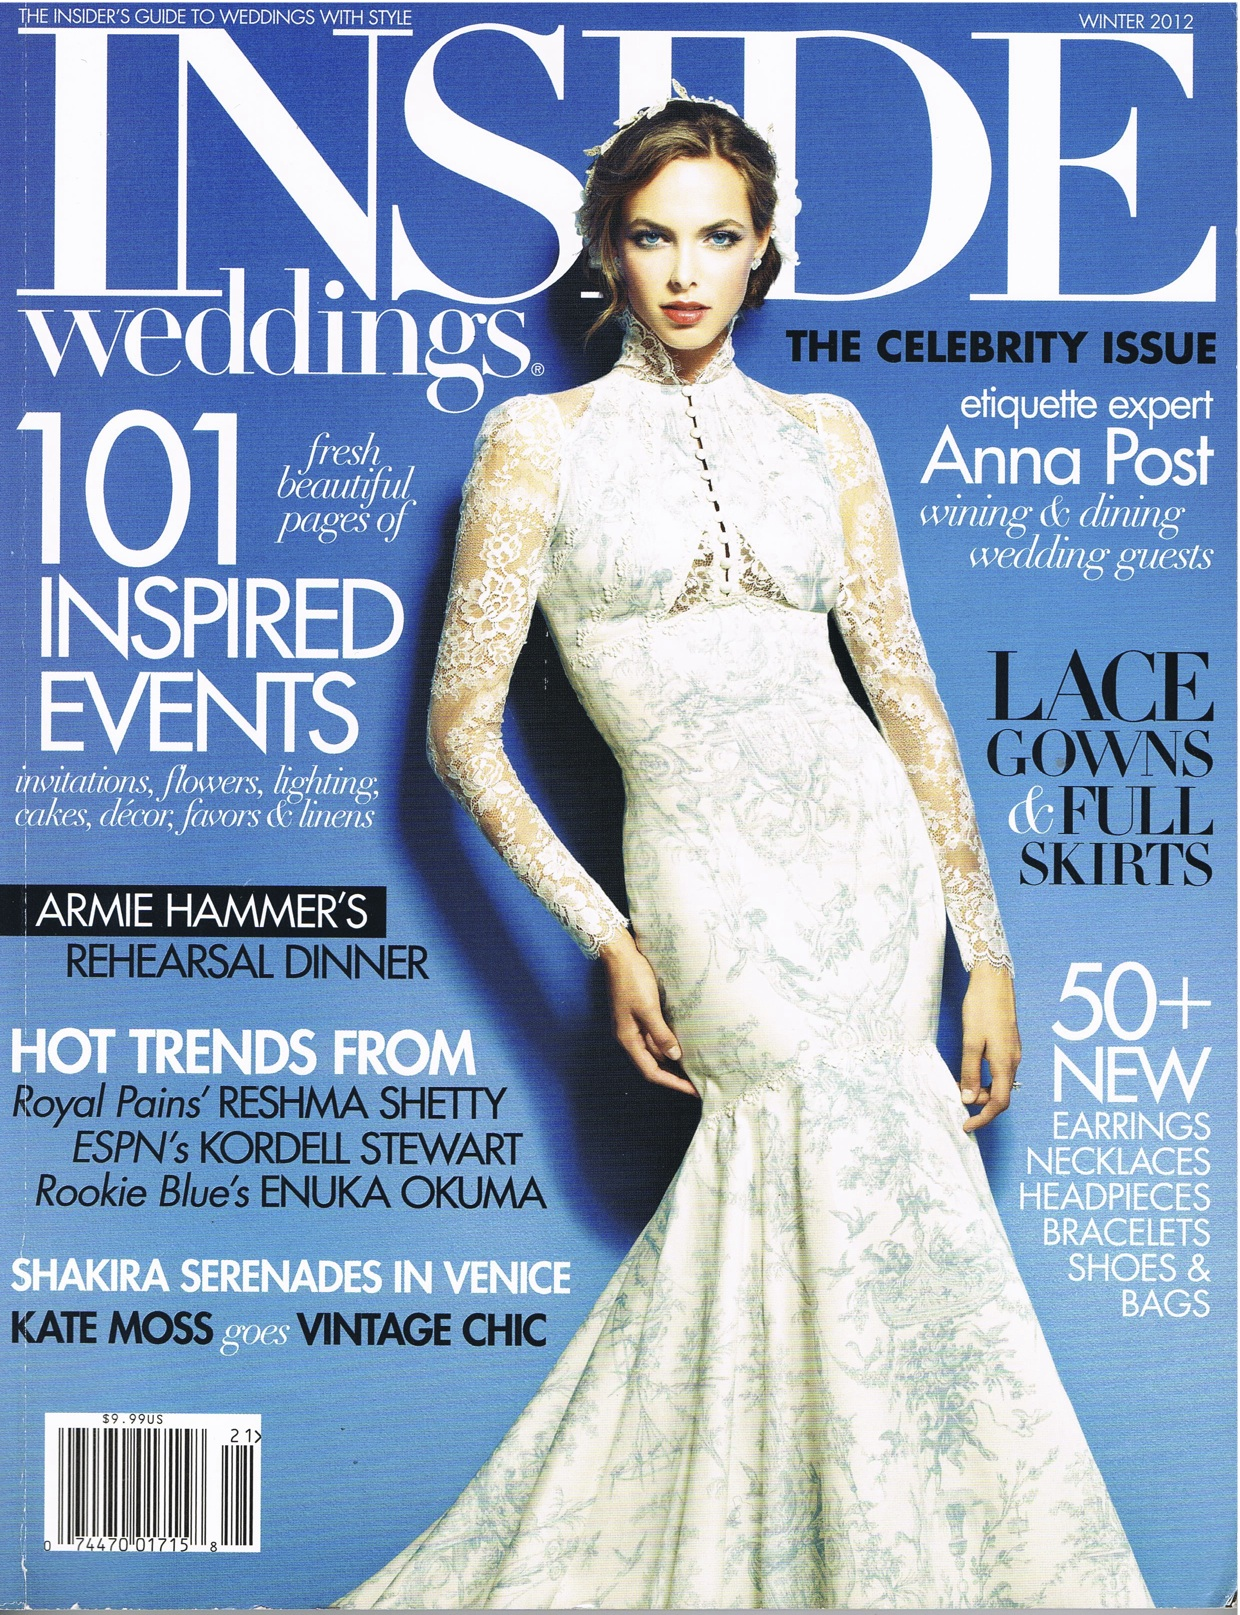 Inside-Weddings-Winter-2012-Cover-Claire-Pettibone